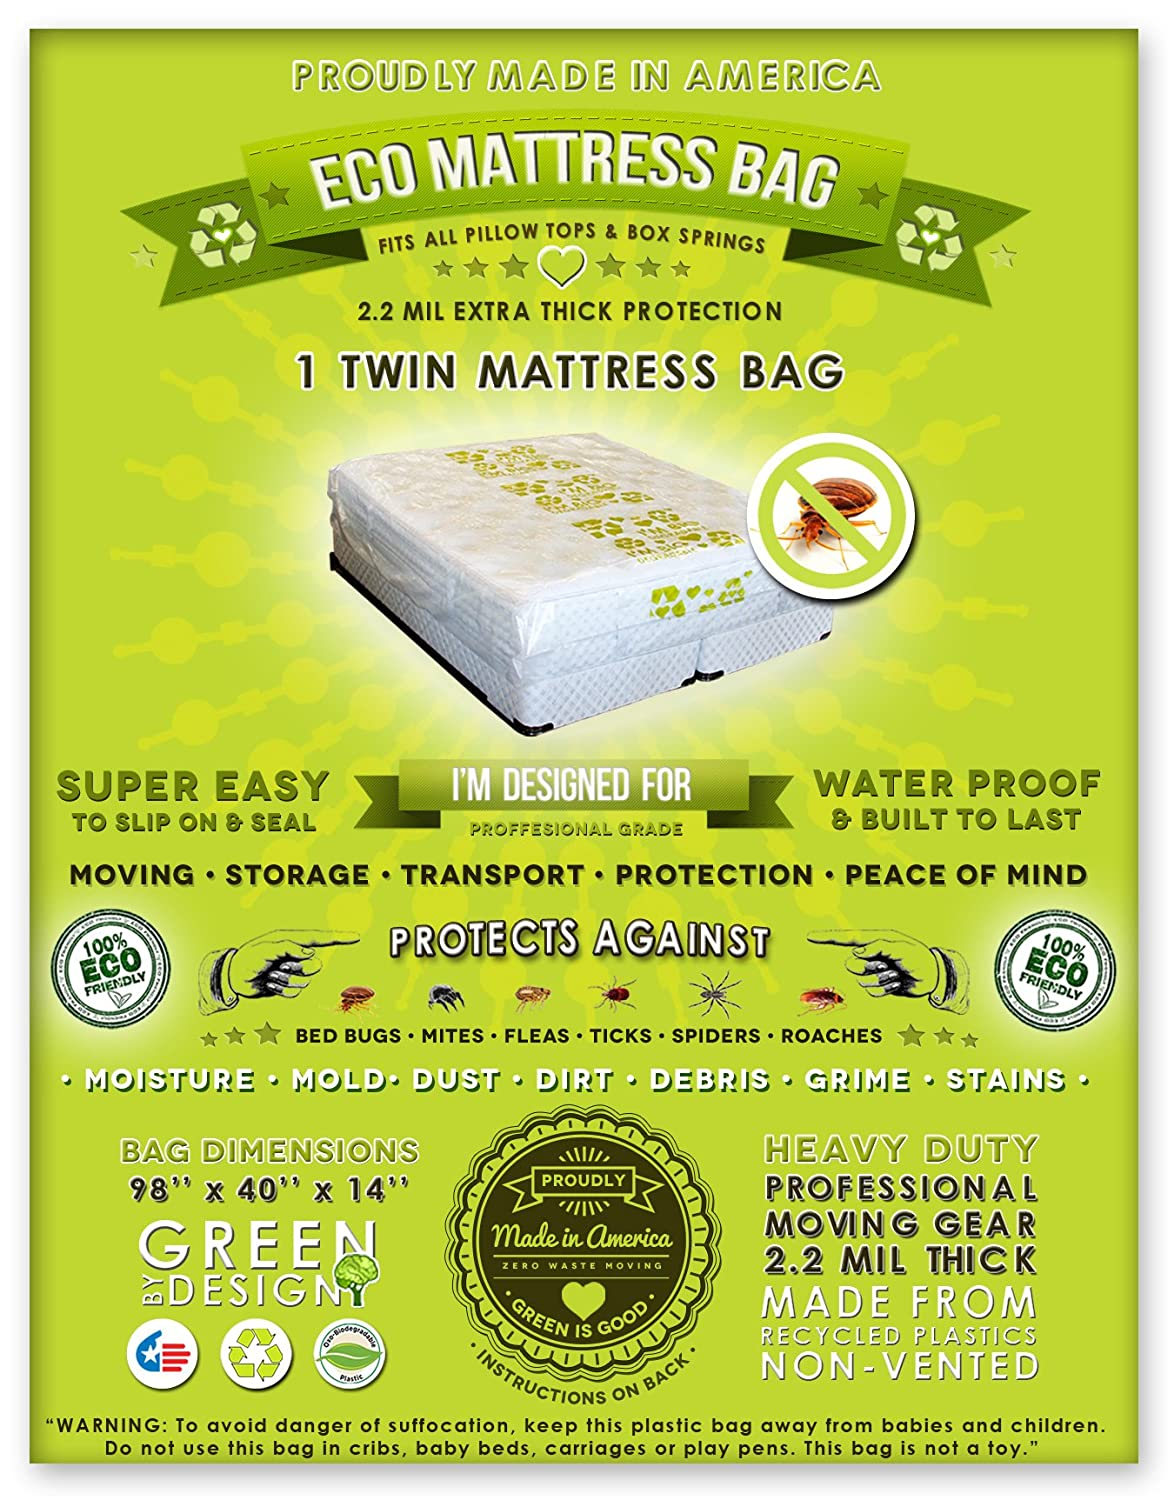 1 Twin Size Mattress Bag. Fits All Pillow Tops and Box Springs. Ideal for Moving, Storage and Protecting Your Mattress. Heavy Duty Professional Grade. Easy to Slip on and Seal. Sleep with Peace of Mind and Don't Let the Bed B